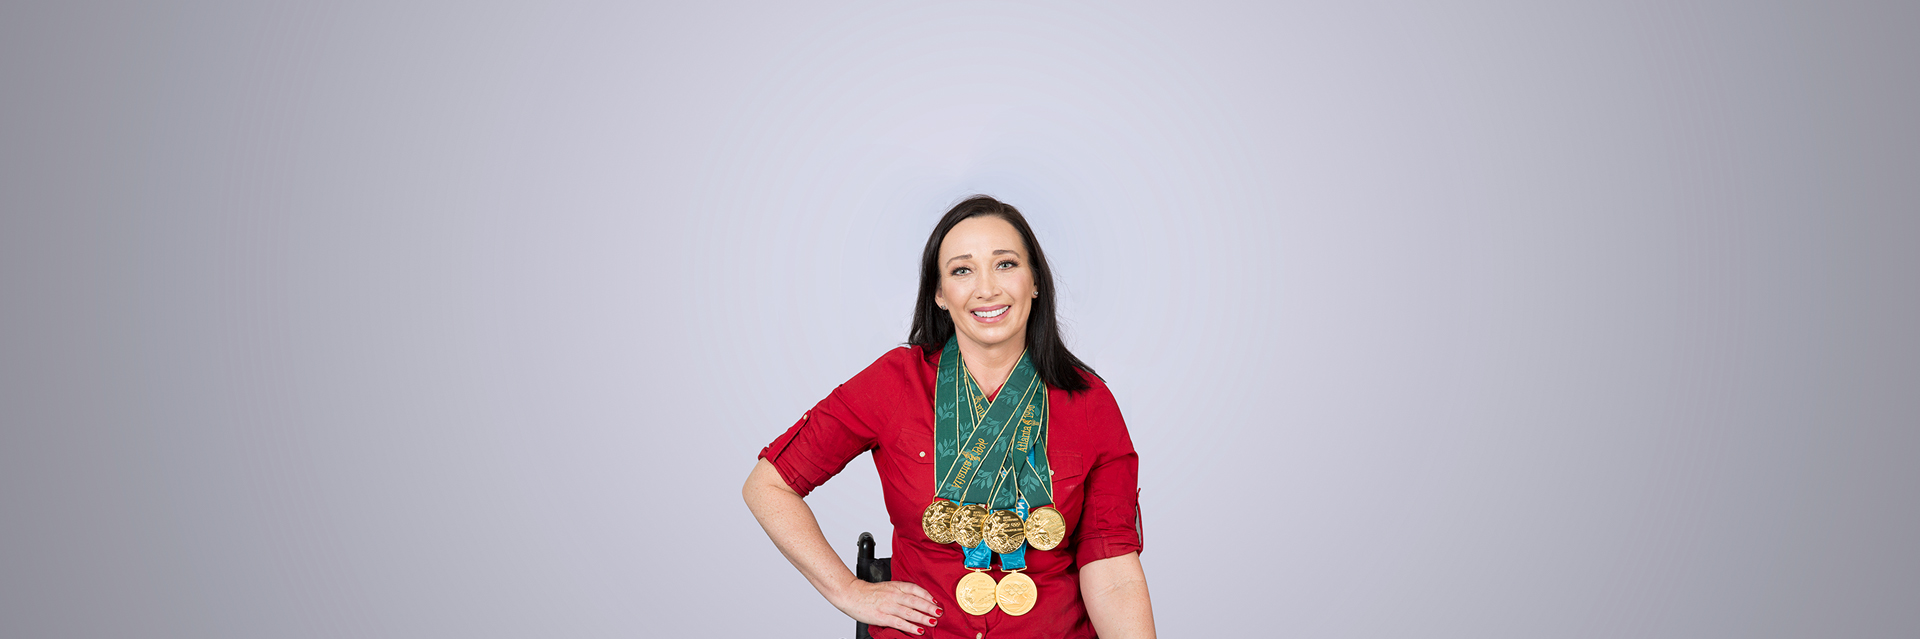 Olympian Amy Van Dyken Supports Angel MedFlight and Patient Advocacy in Medical Flights